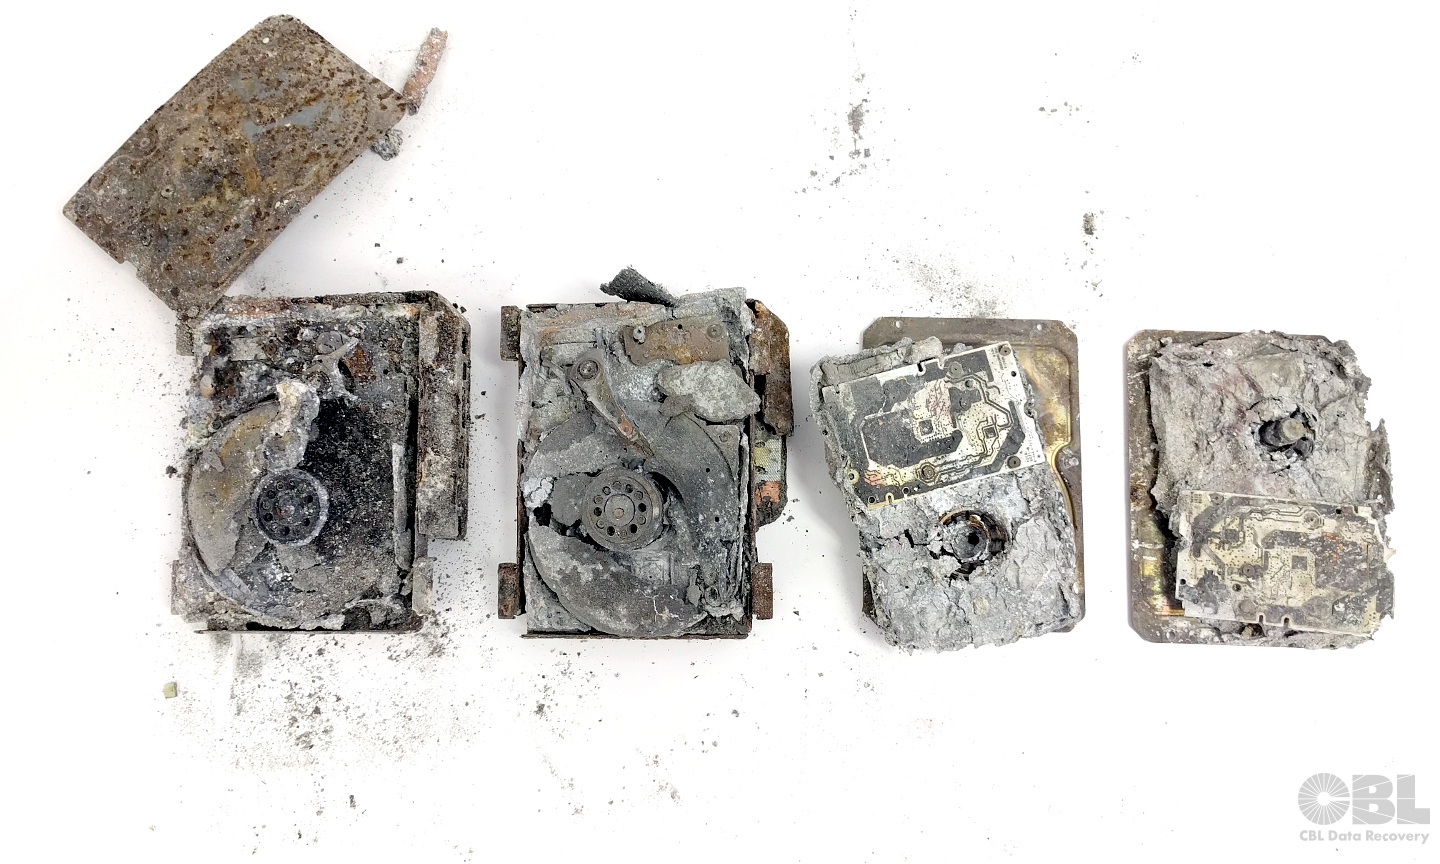 Sometimes the effects of a disaster are too much for recovery - photos of some hard drives destroyed by wildfires in Fort McMurray